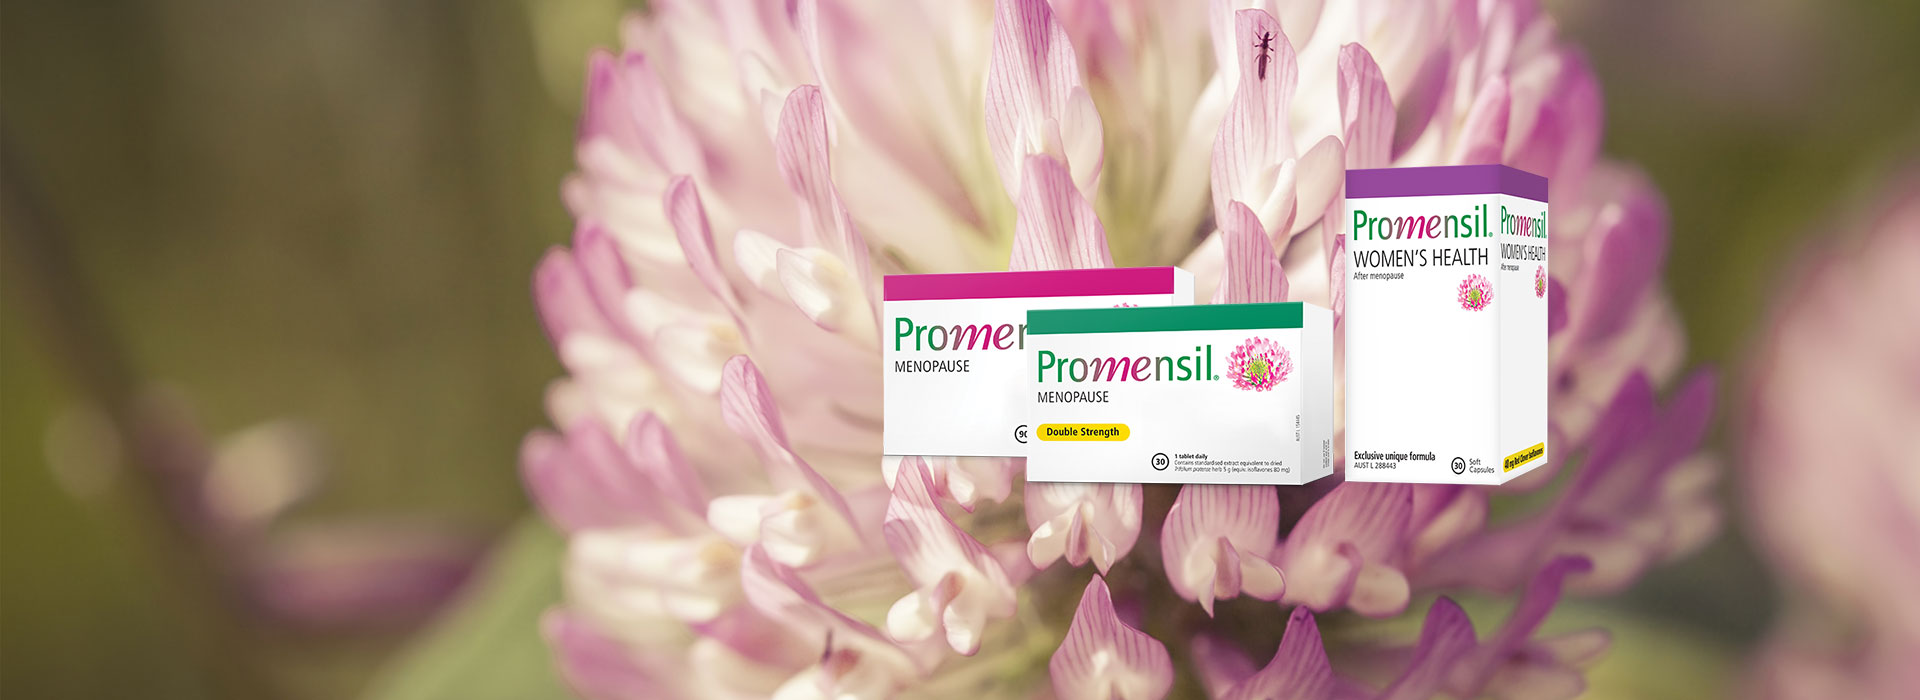 About Promensil